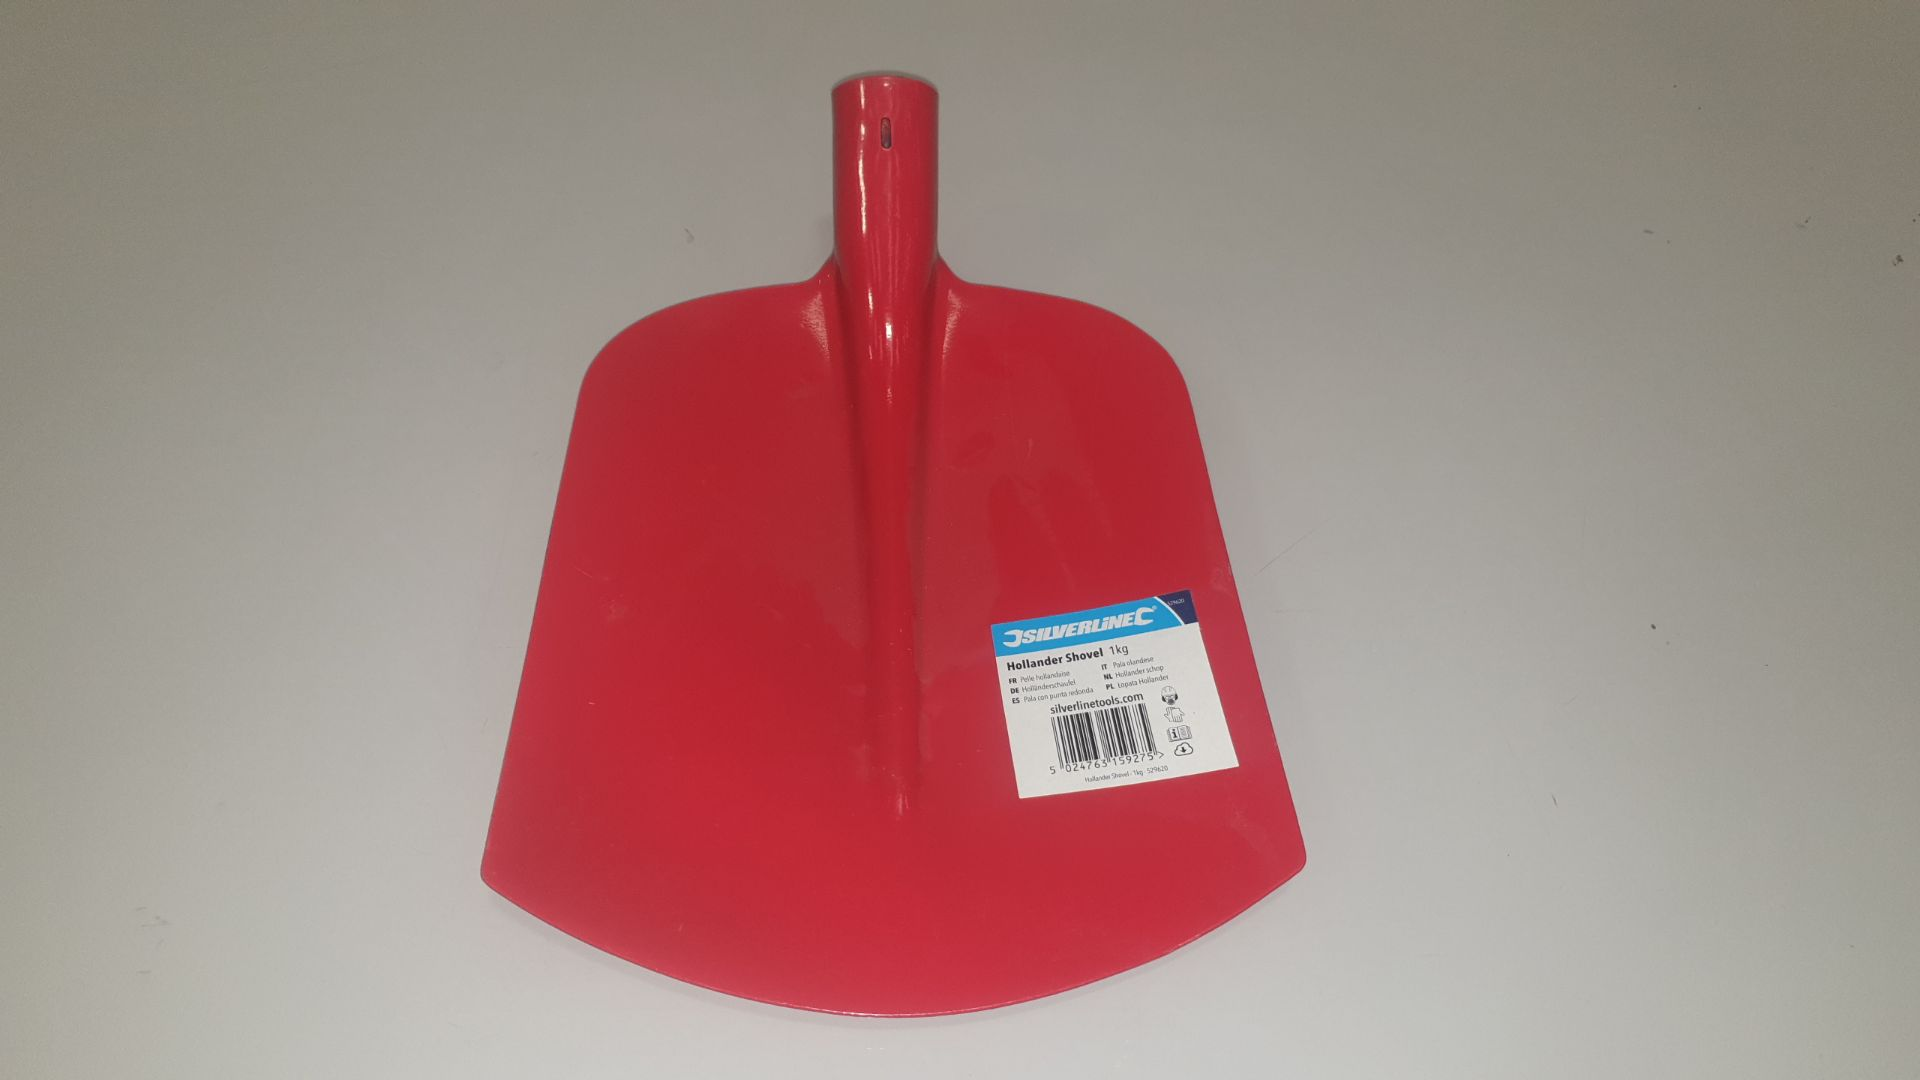 Lot 327 - 36 X BRAND NEW SILVERLINE CONTRACTORS HOLLANDERSHOVEL 1KG (PROD CODE 529620) TRADE PRICE £5.14